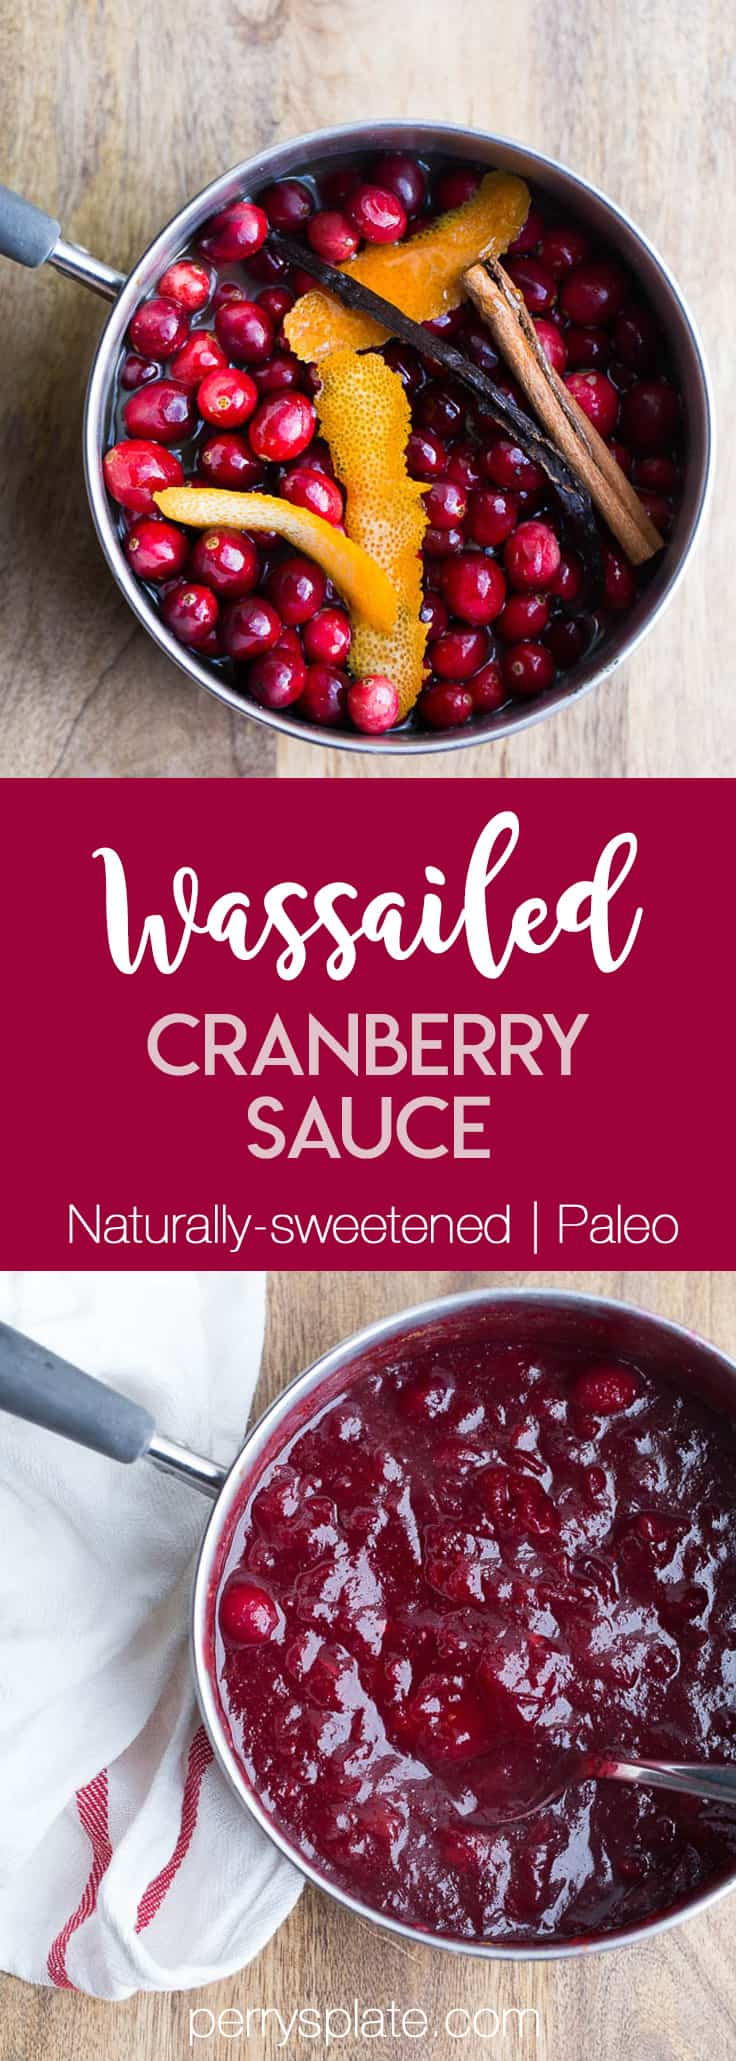 Wassailed Cranberry Sauce | Paleo Cranberry Sauce | Fast and Easy Cranberry Sauce | perrysplate.com